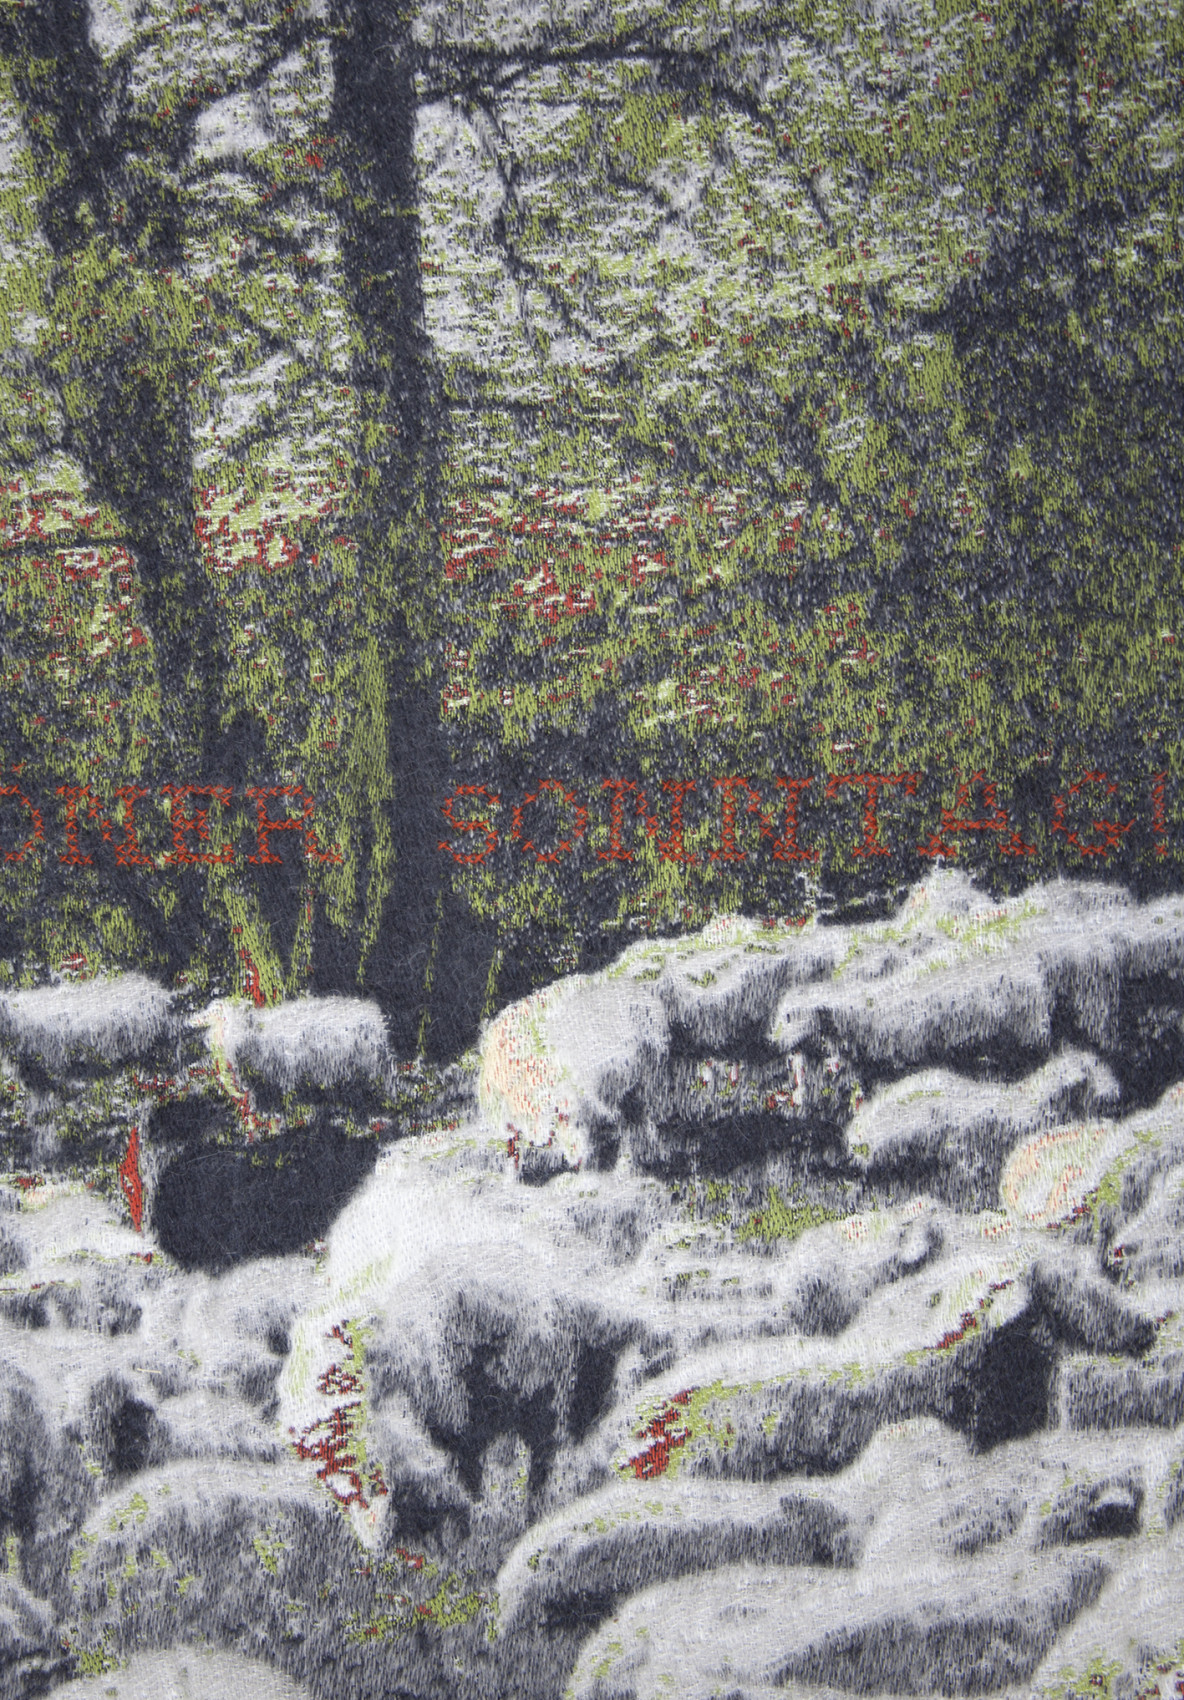 Detail 'Was für ein schöner Sonntag' - (booktitle of Jorge Semprún) - Weimar, Buchenwald - Jacquard woven - double weaves - mohair and cashwool - text embroidered by hand - 170 x 290 cm - 2015